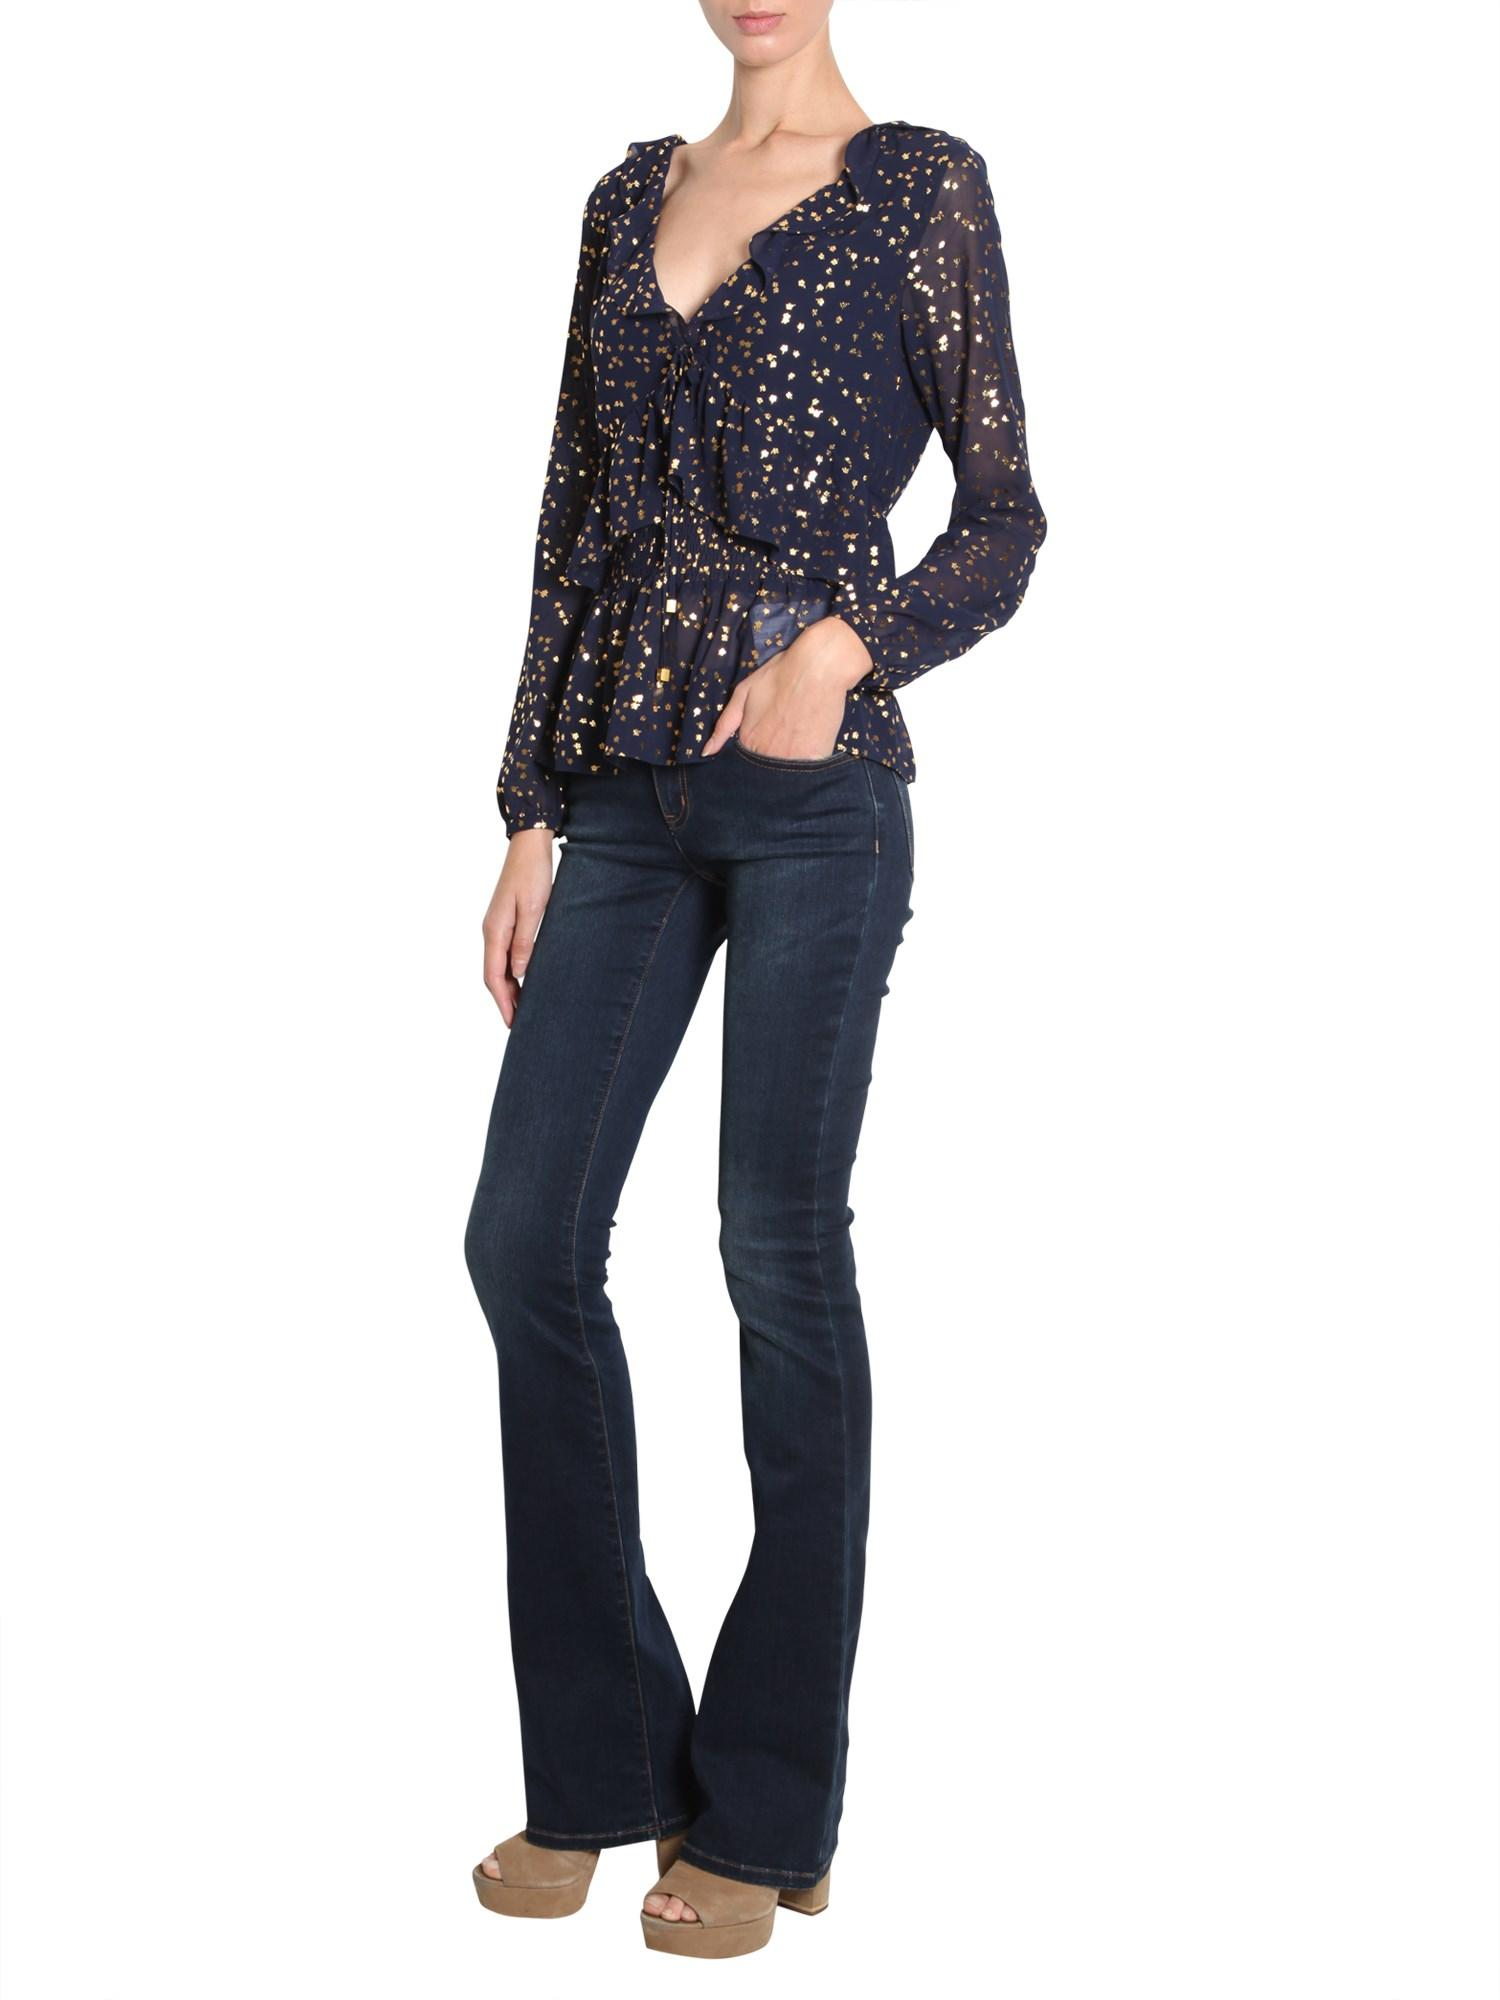 193672a5078e9 Lyst - MICHAEL Michael Kors Flower Printed Chiffon Blouse With ...